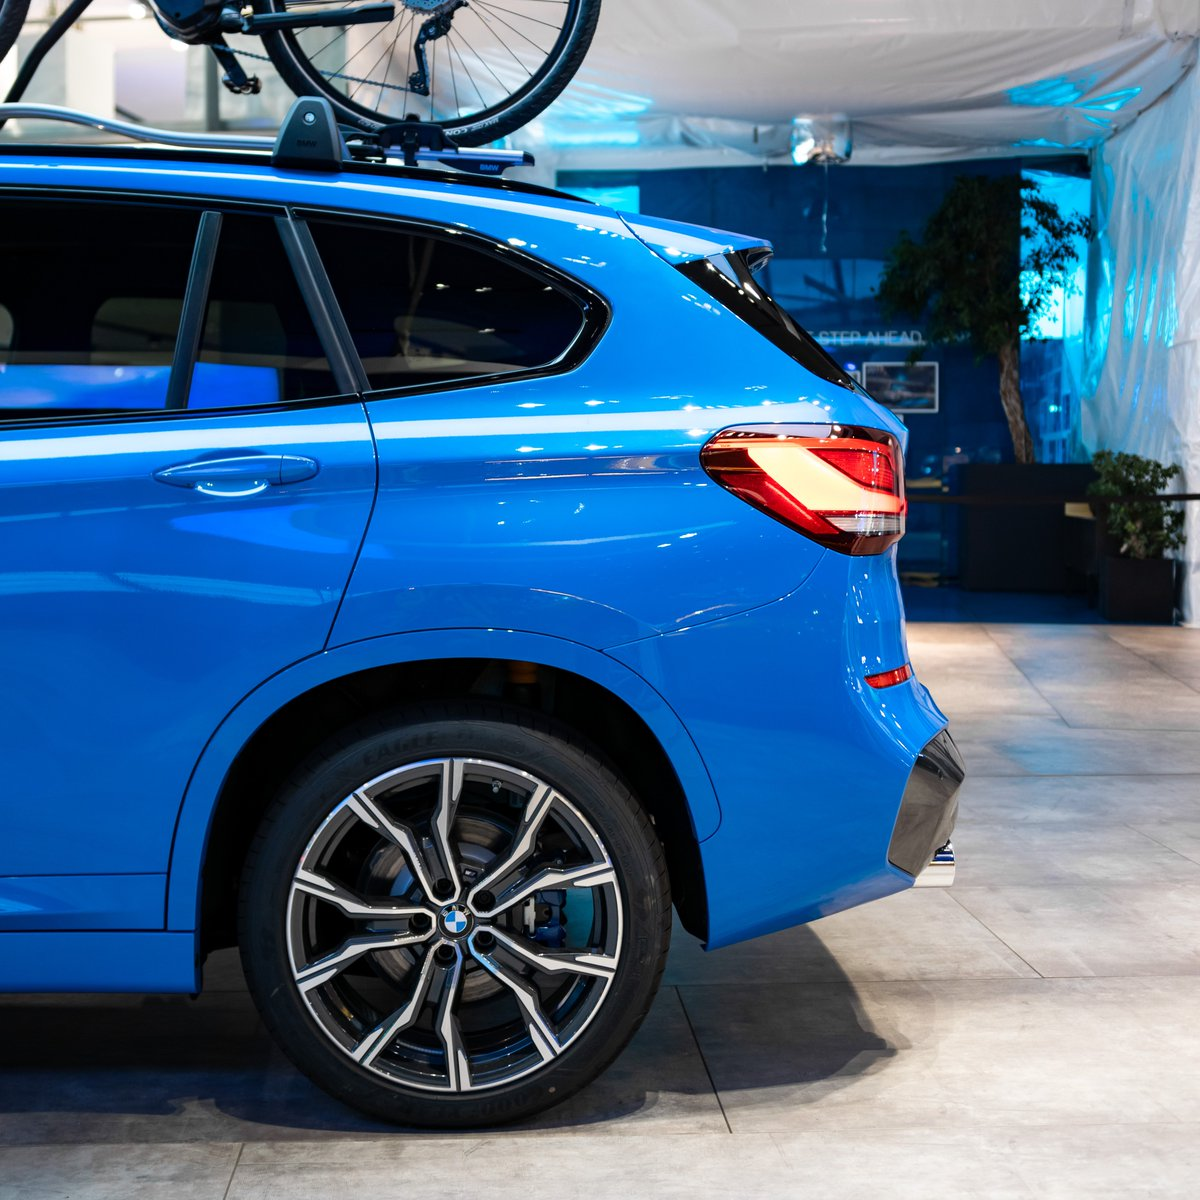 BMW M Sport Package, 231 hp and sporty Misano blue metallic - this BMW X1 is truly a Sports Activity Vehicle. http://bit.ly/2Oy5pP8 #TheX1 #BMWWelt